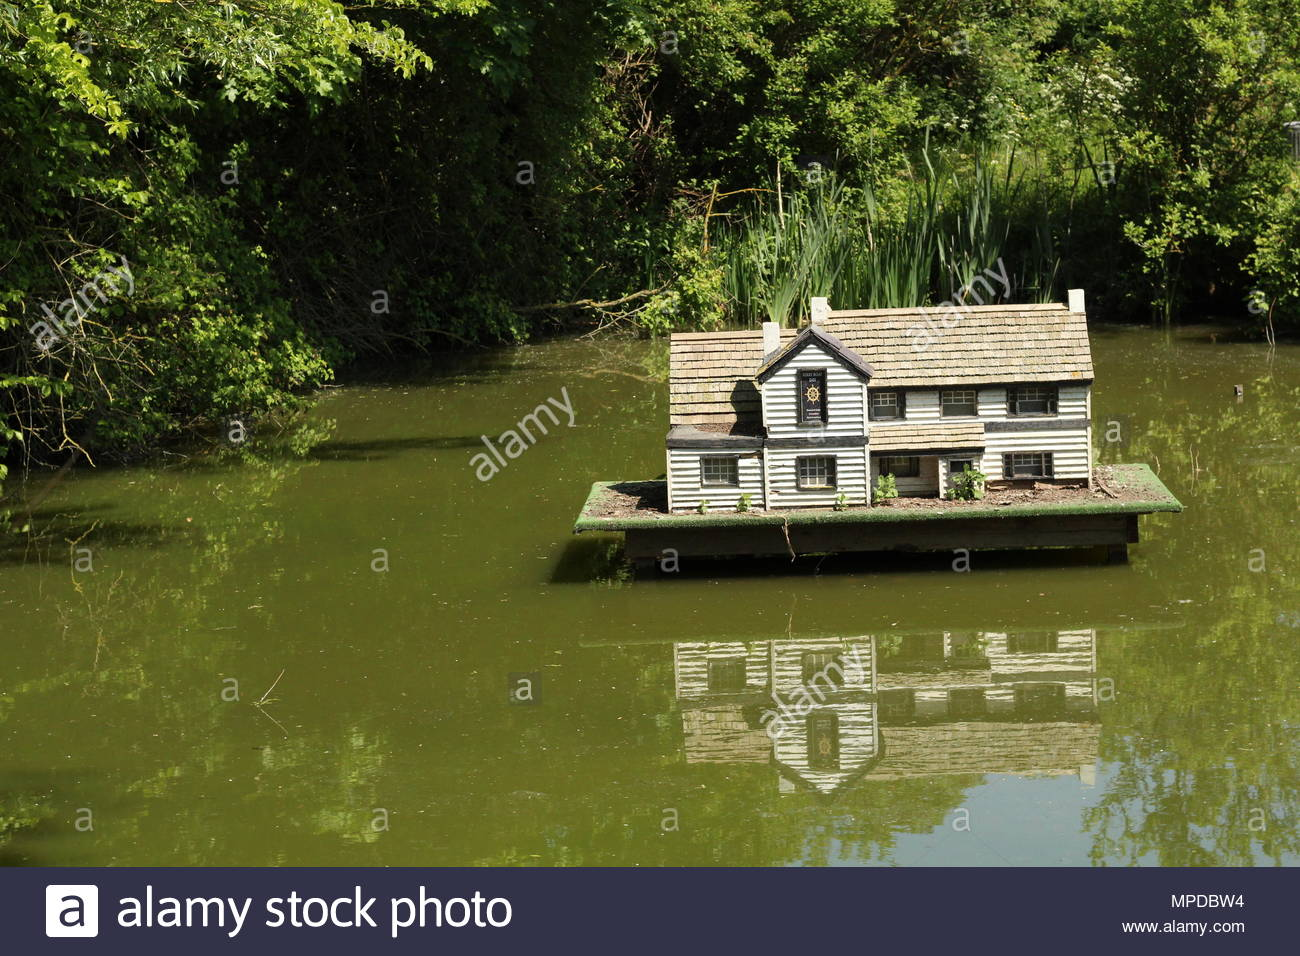 Miniature replica of the Ferry Boat Inn and reflections in a pond at North Fambridge, Essex, Britain. Space for copy. - Stock Image